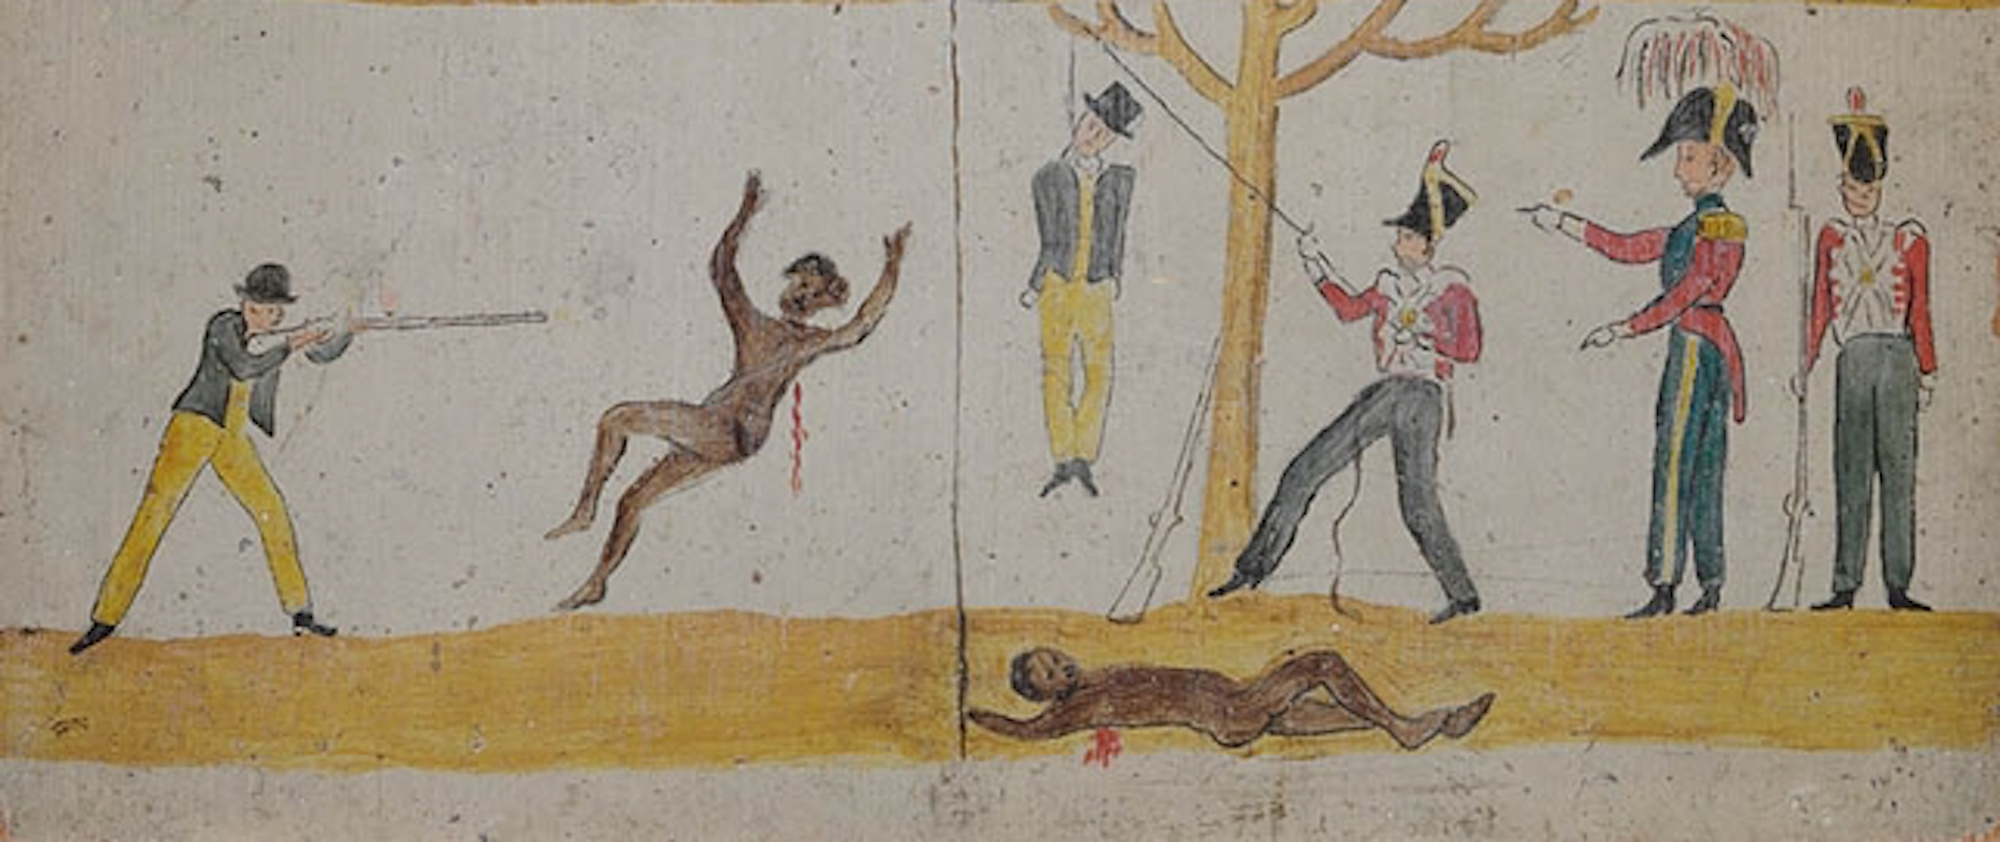 Image of the fourth section of Governor Arthur's Proclamation to the Aborigines